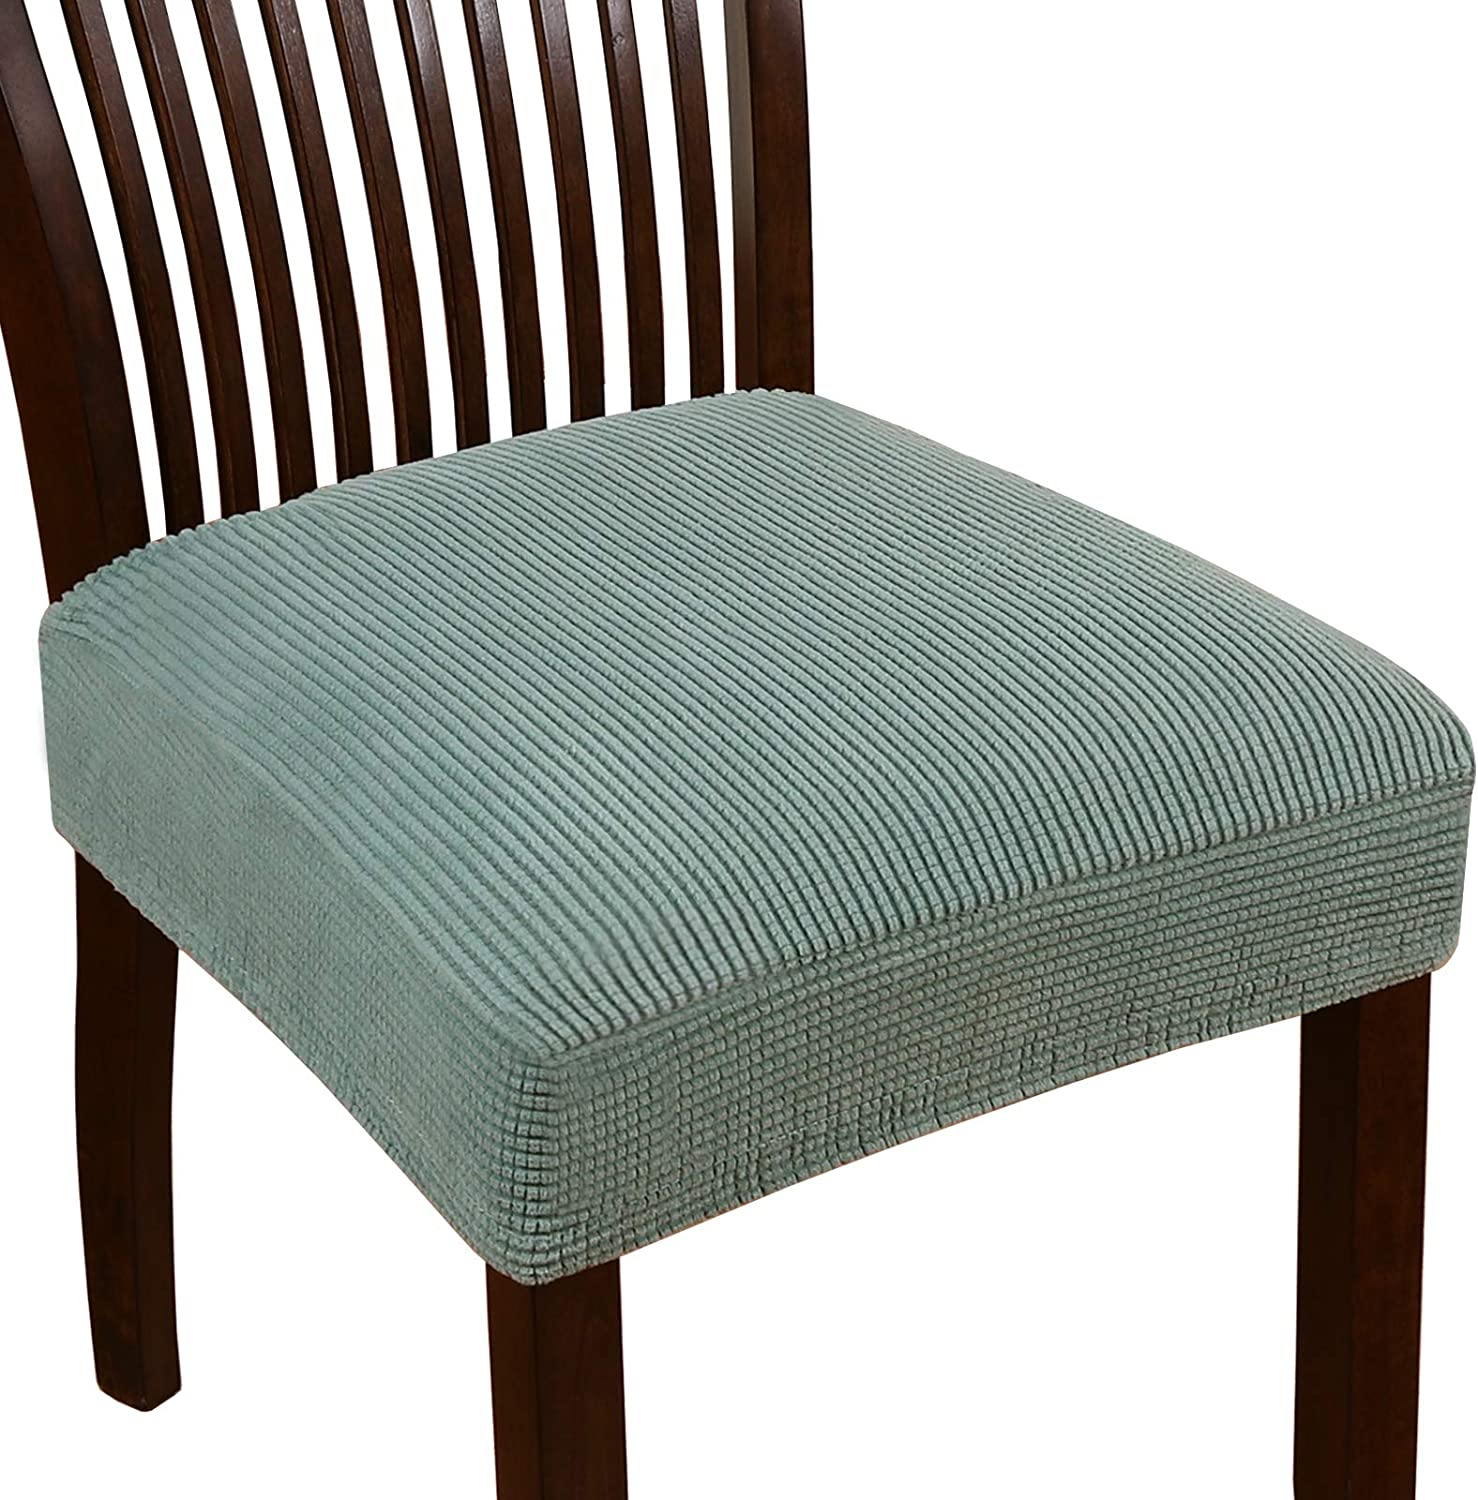 Turquoize 予約販売 Stretch Jacquard Chair for 百貨店 Covers Din Seat